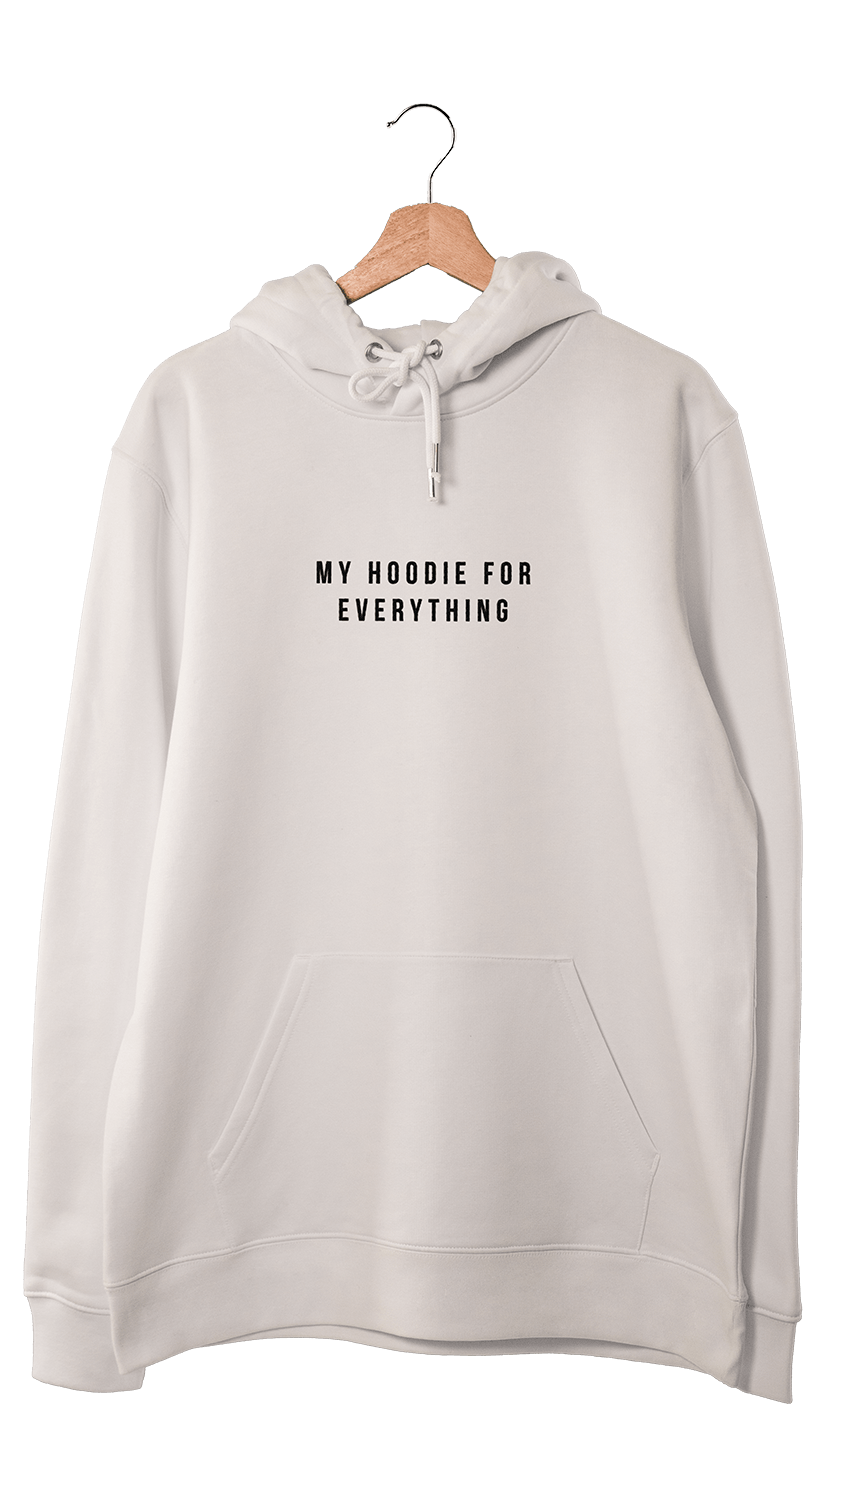 My hoodie for everything